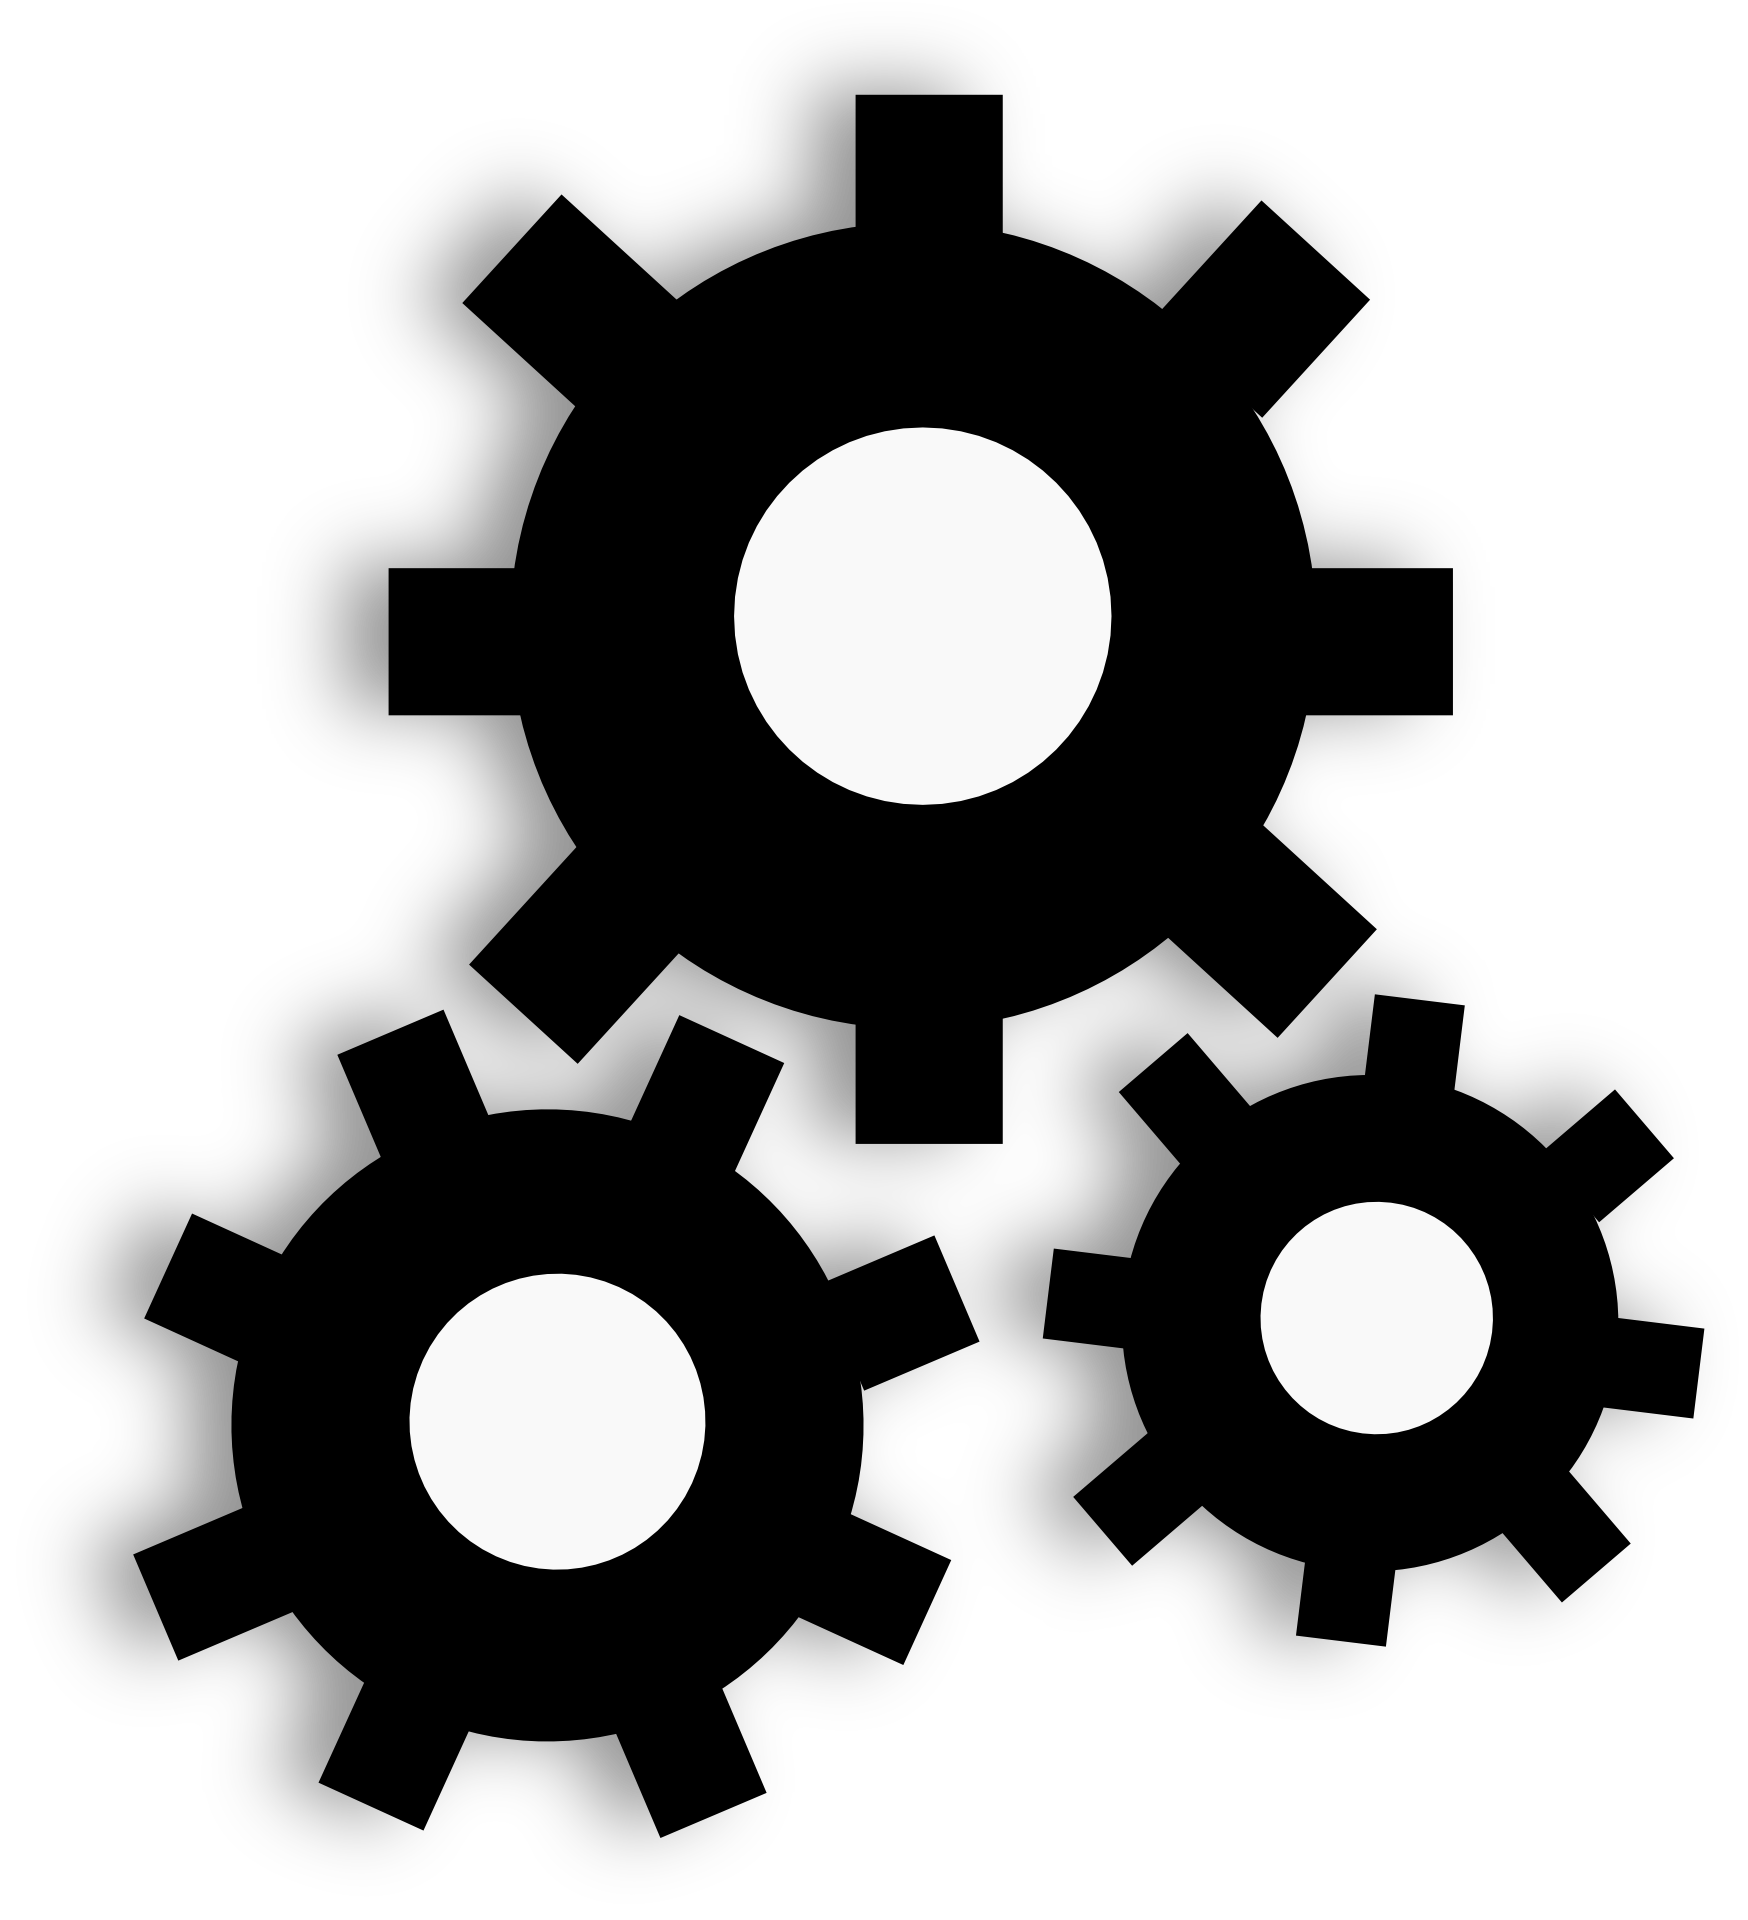 Three gear wheels clipart free image.